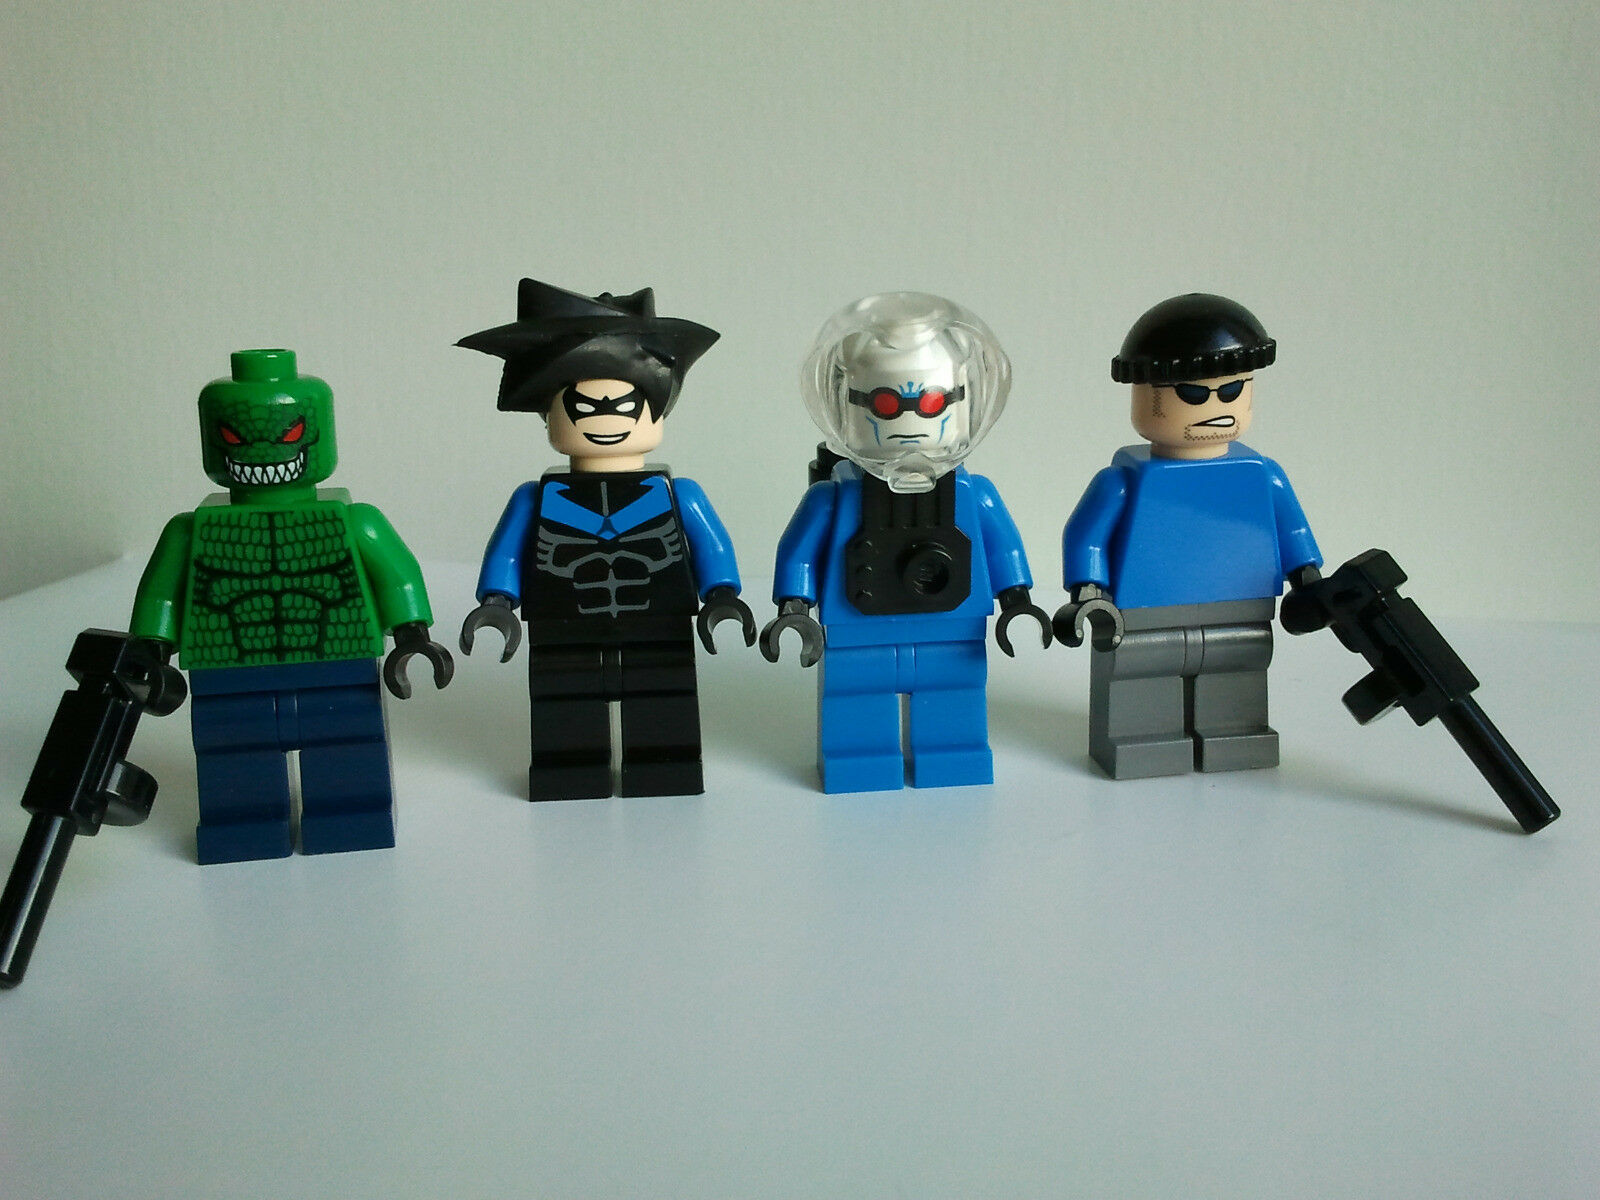 Lego Batman bat008 Killer Croc bat015 Nightwing bat011i Freeze bat012 Henchman